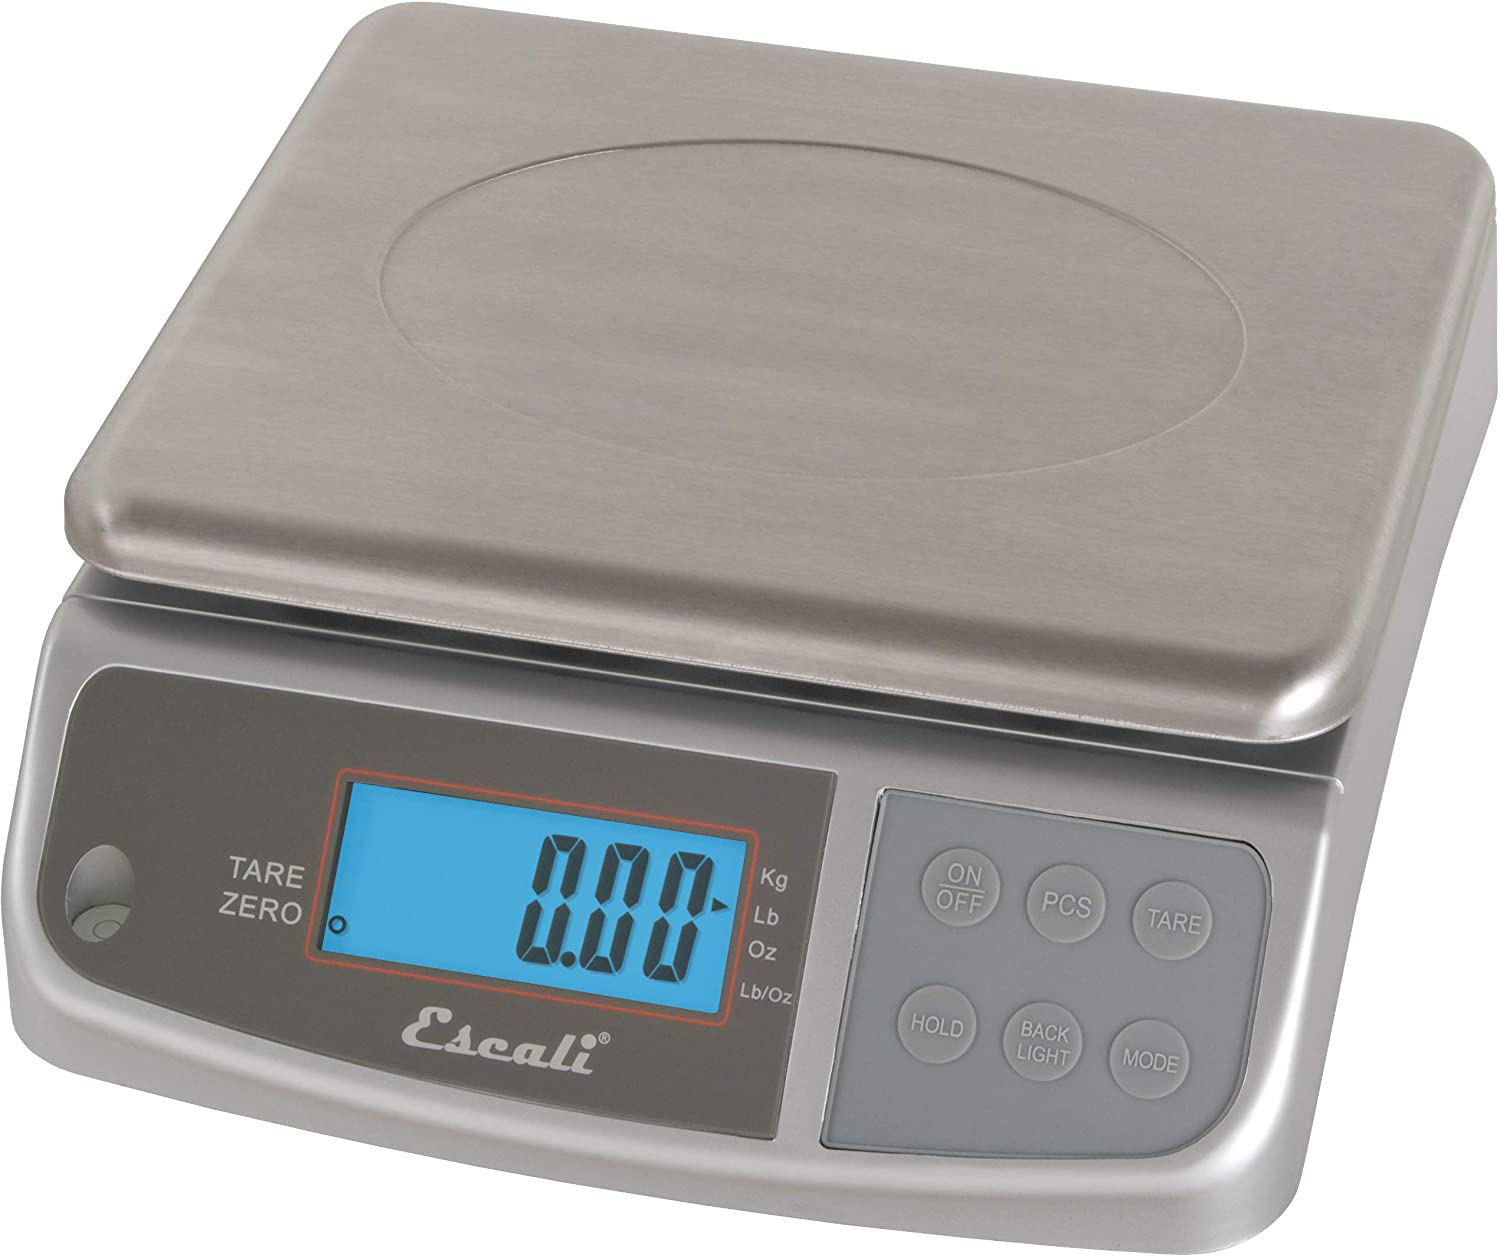 San Jamar SCDGM66 M-Series Digital Food/Kitchen Scale, 66lb Capacity